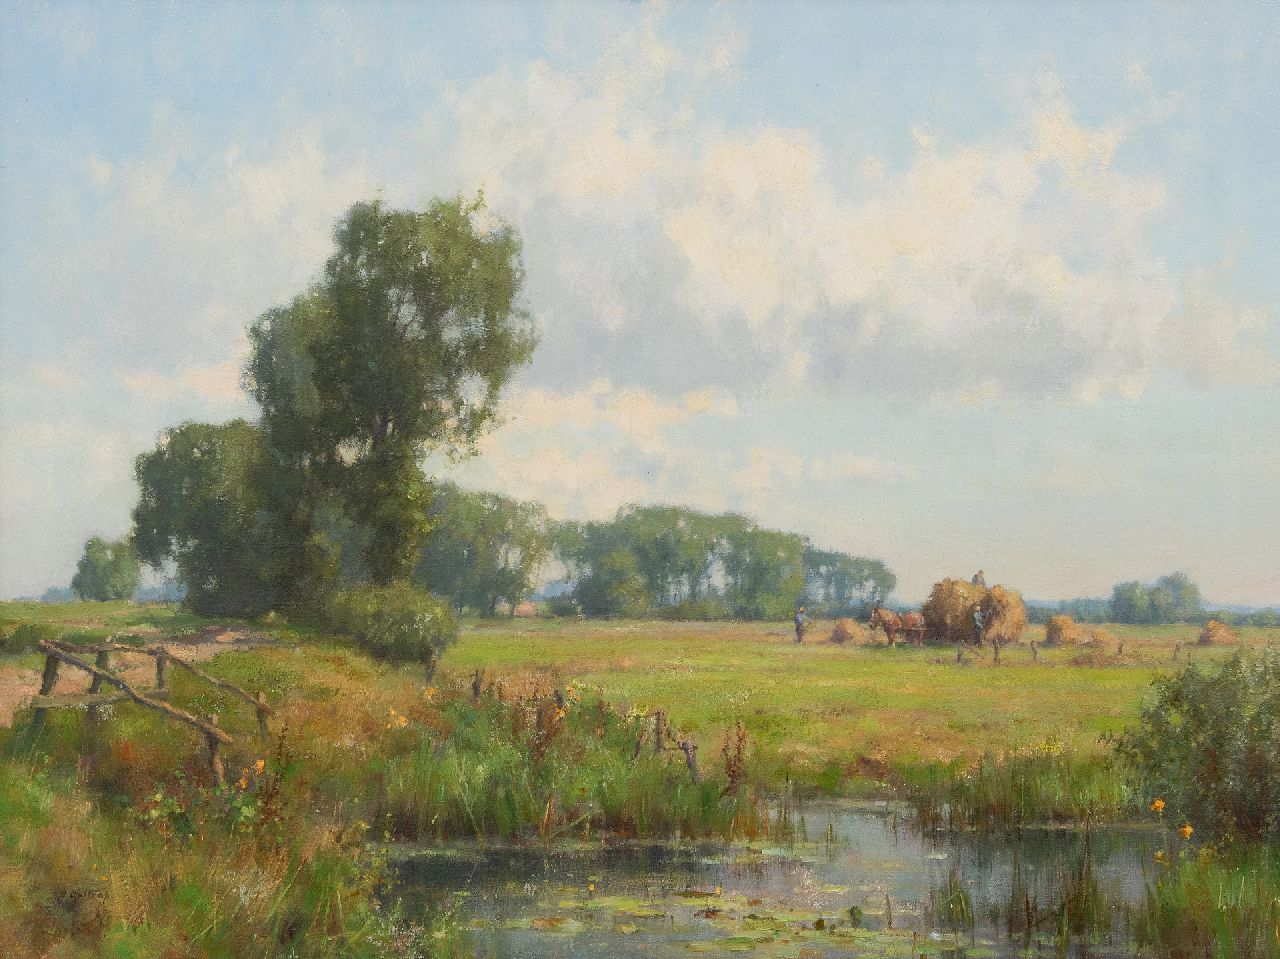 Holtrup J.  | Jan Holtrup | Paintings offered for sale | Hay harvest in the Gelderse Waard, oil on canvas 45.0 x 60.1 cm, signed l.l.